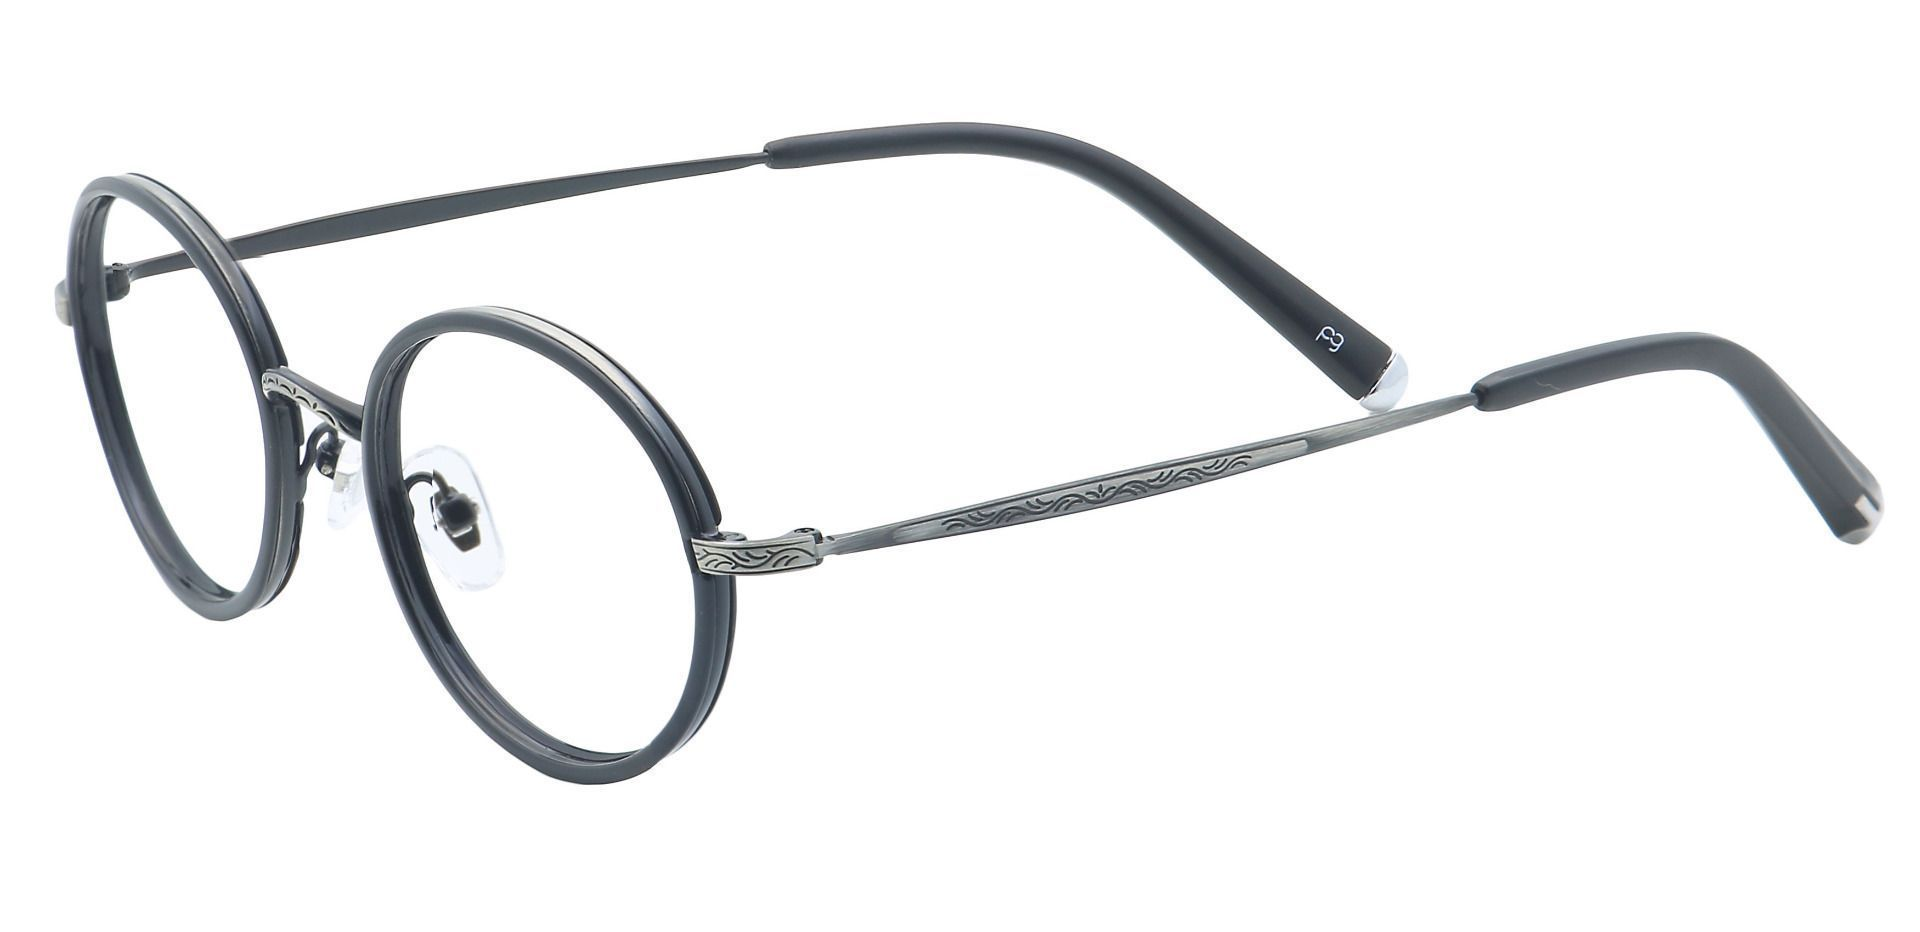 Petunia Round Lined Bifocal Glasses - Black